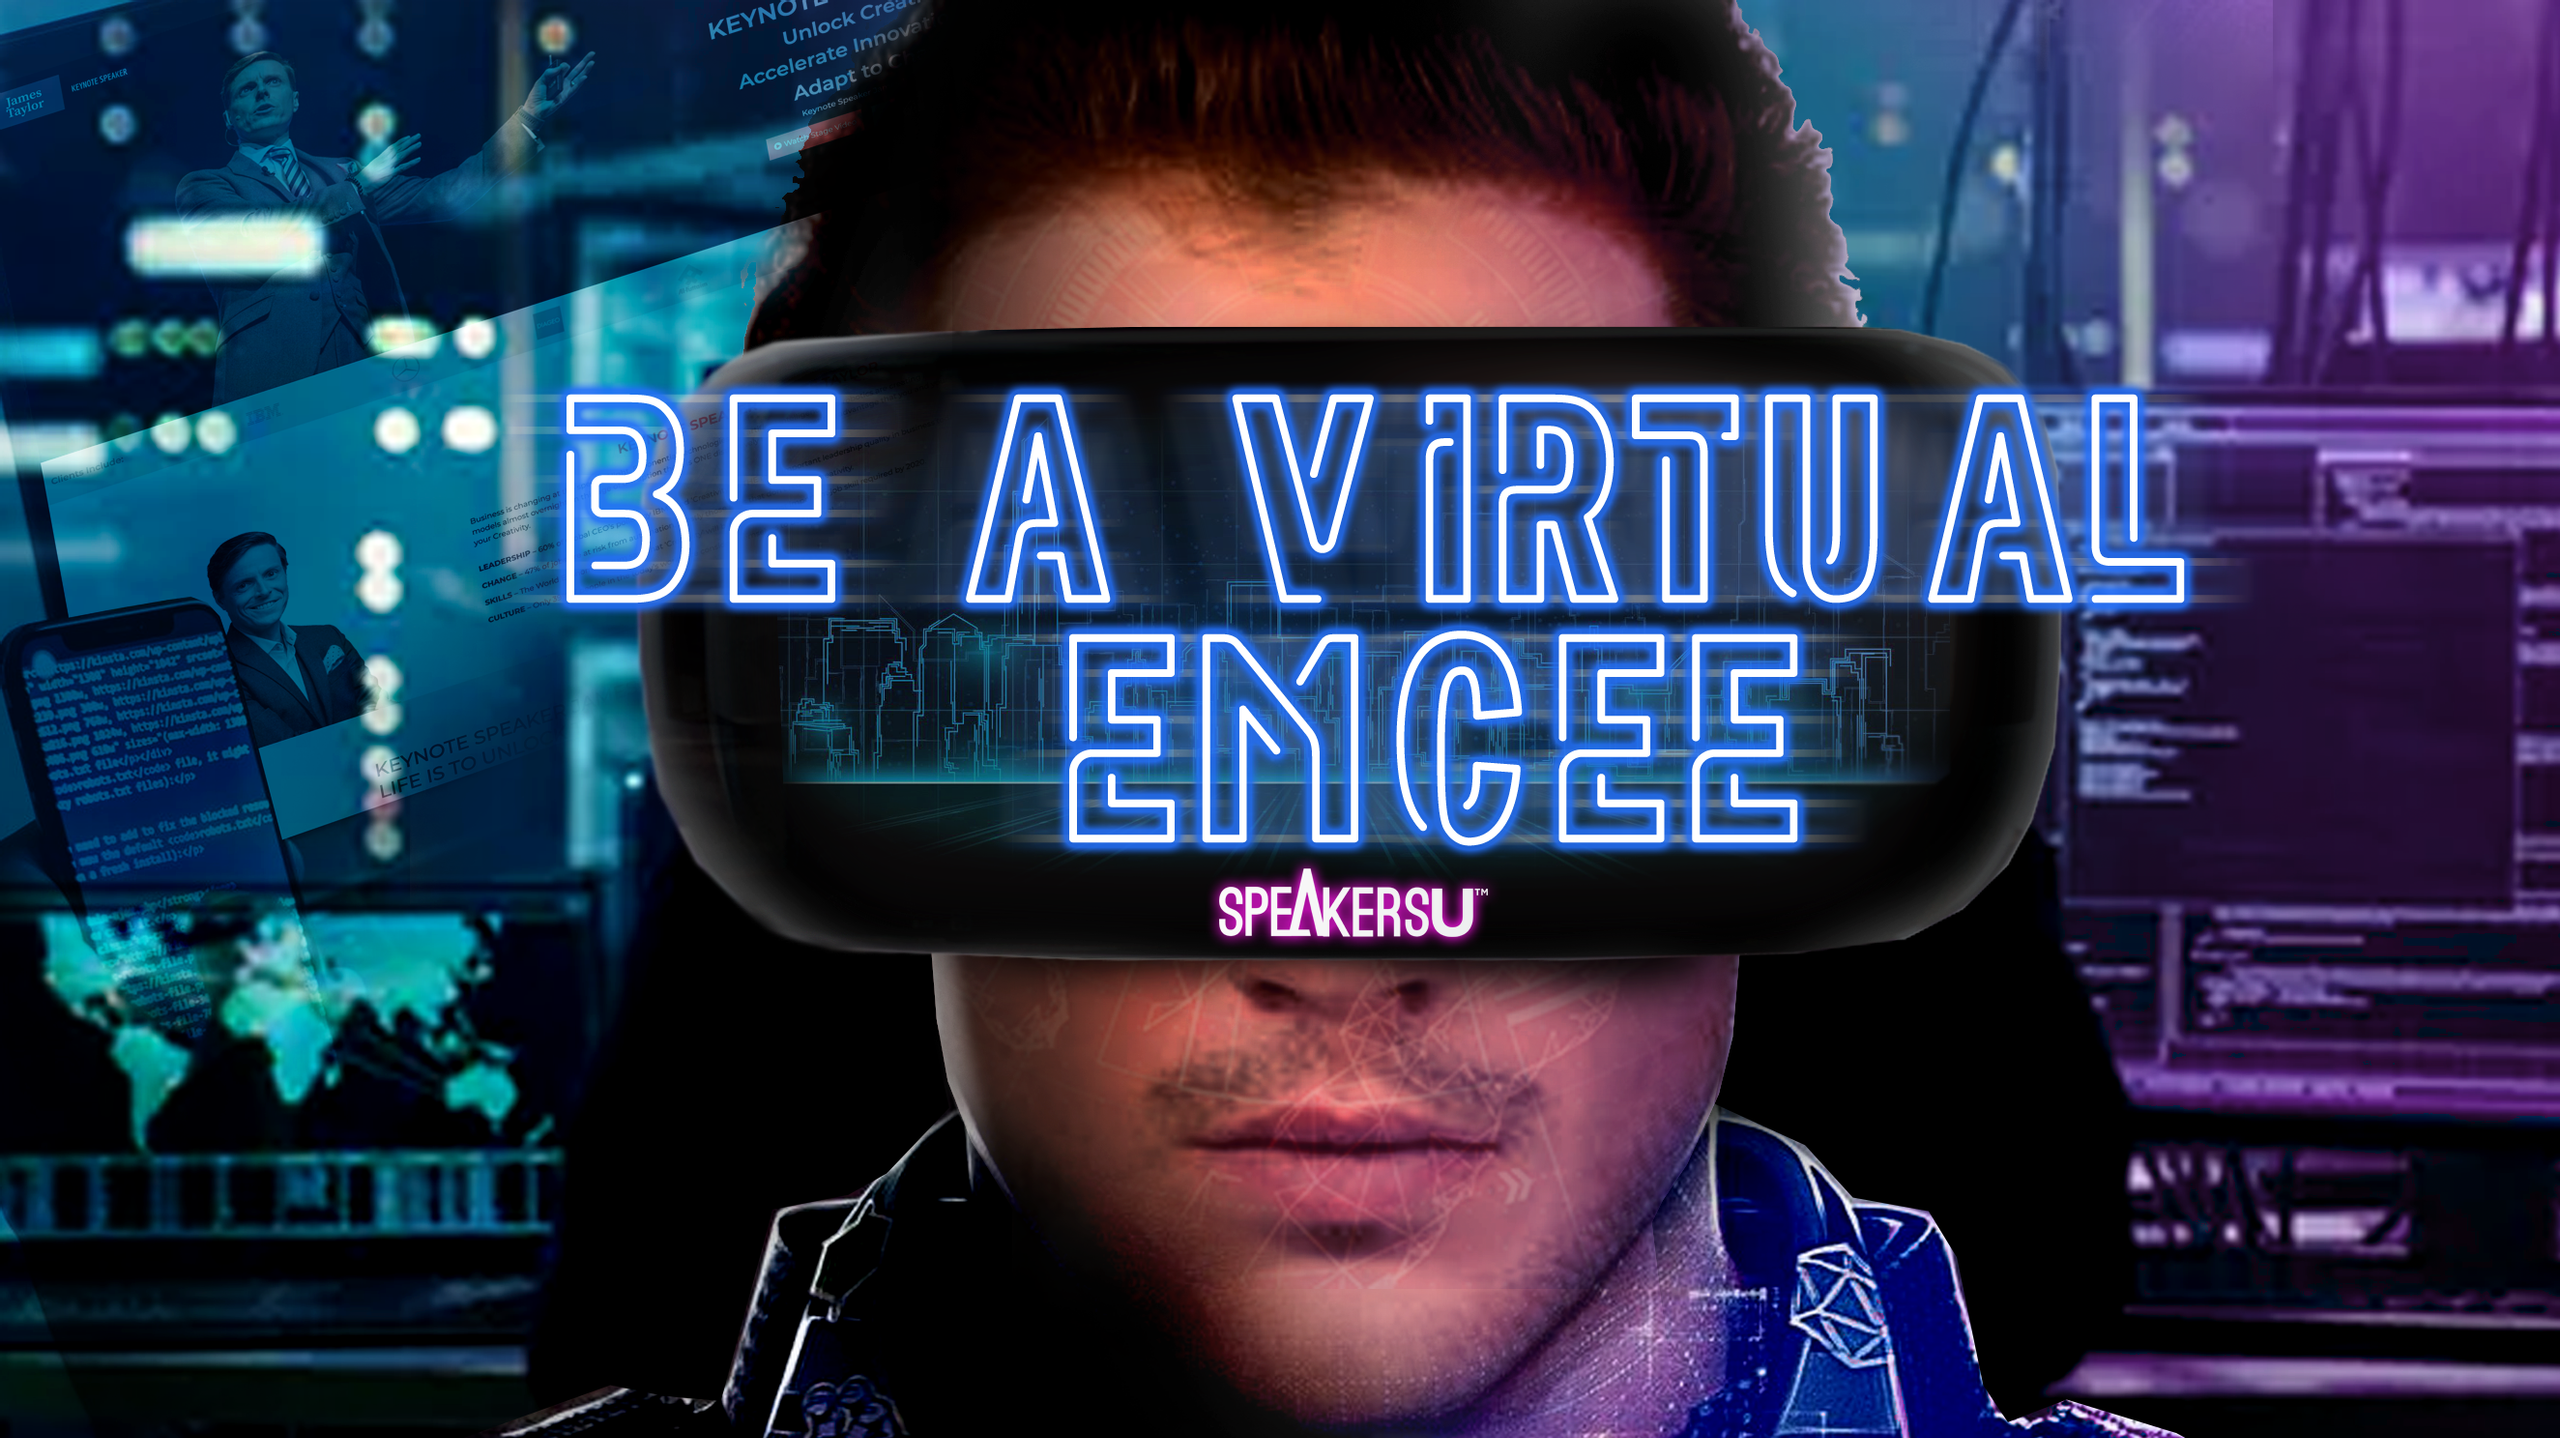 How To Become A Virtual Emcee